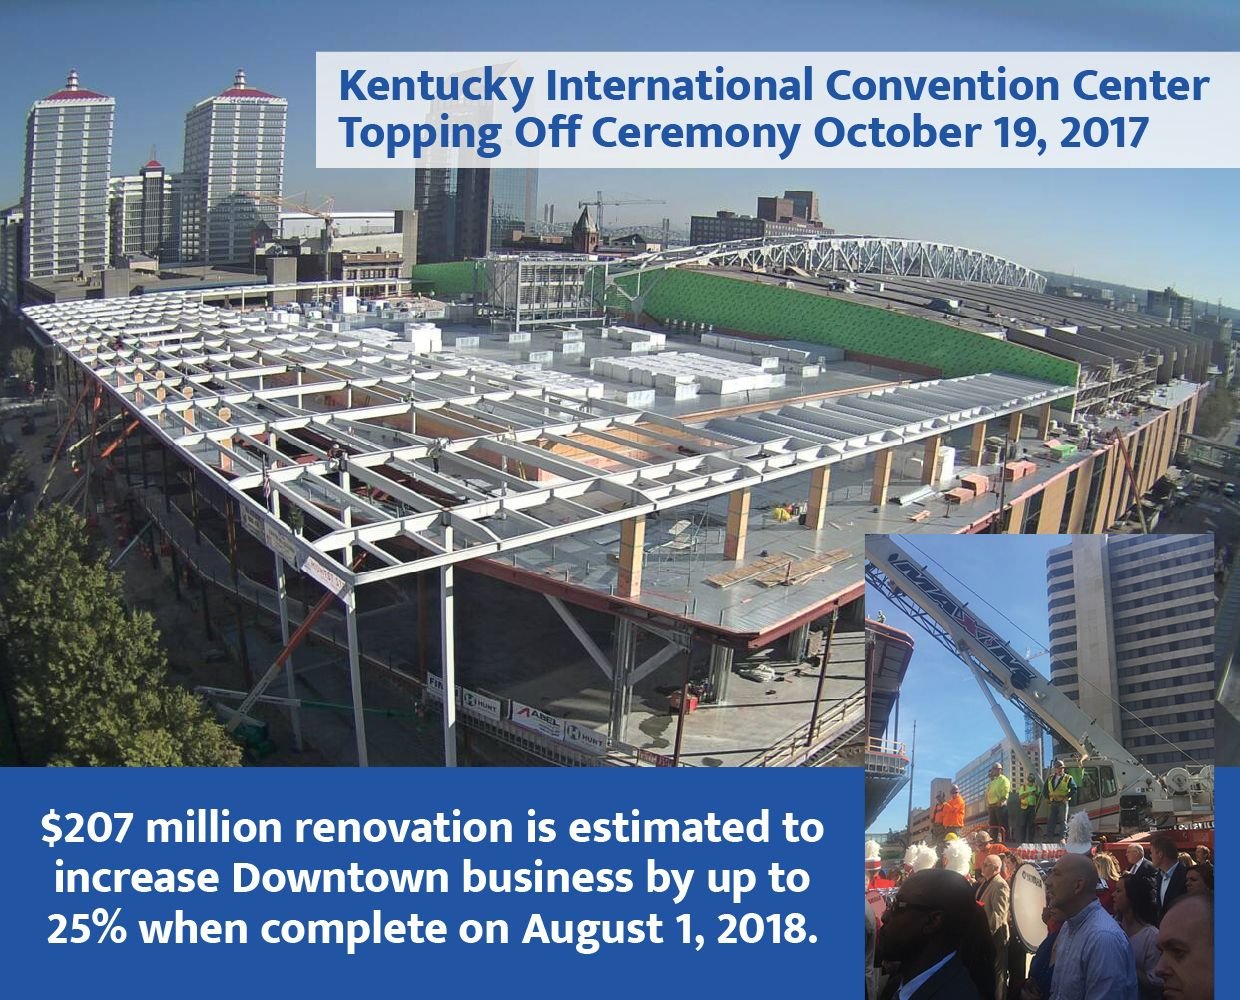 Kentucky Convention Center Hotels